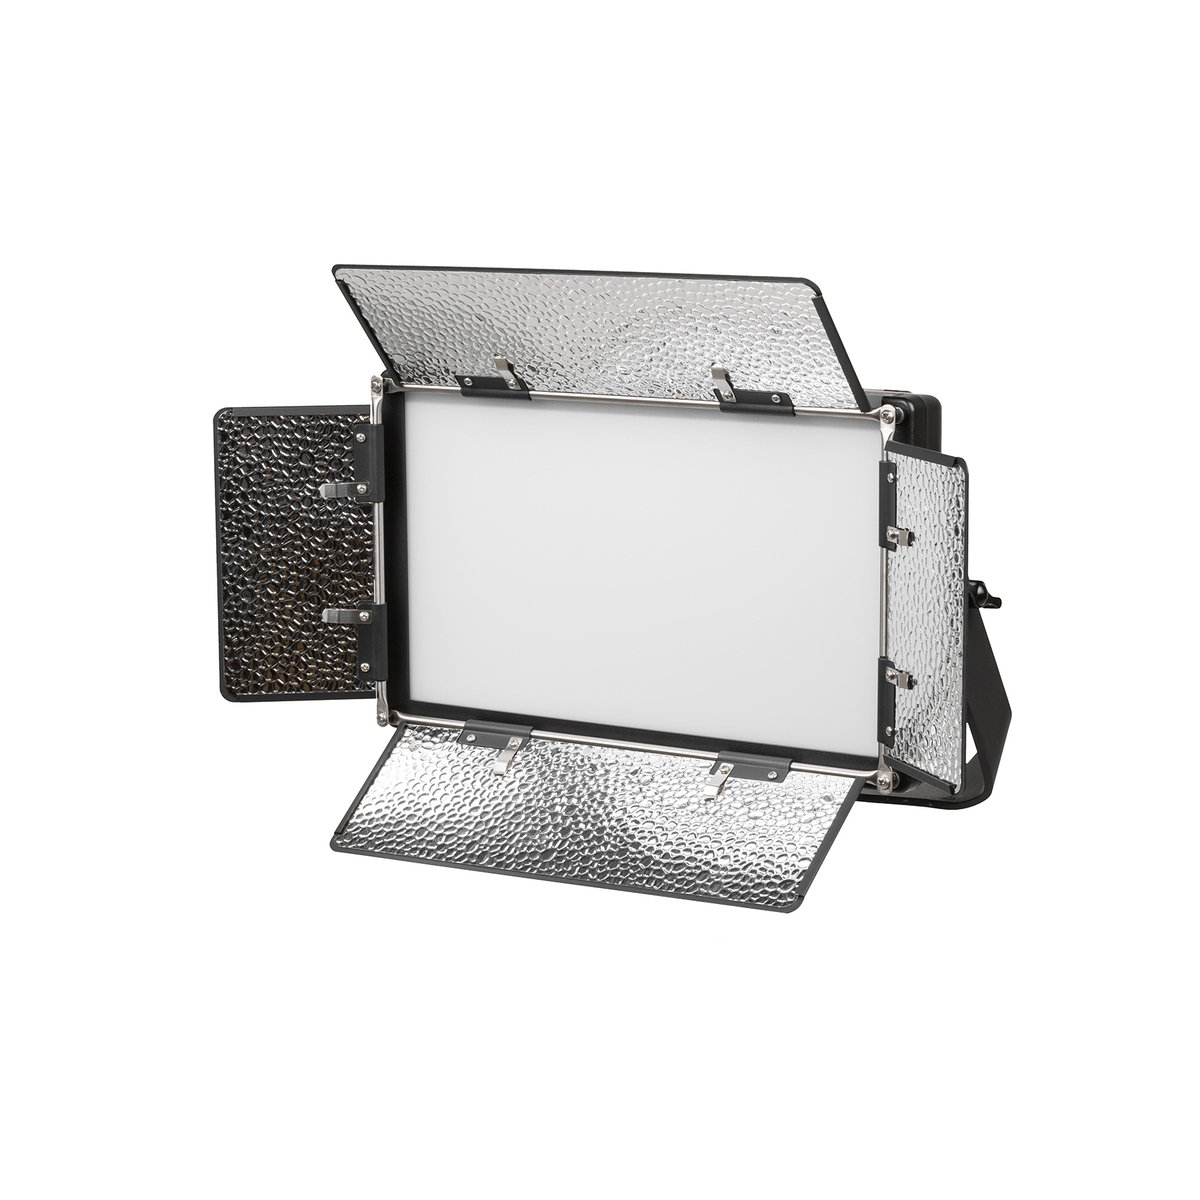 ikan Corporation LB5 Lyra Bi-Color 3200K-5600K Soft Panel Half x 1 Studio and Field LED Light LB5-IKAN